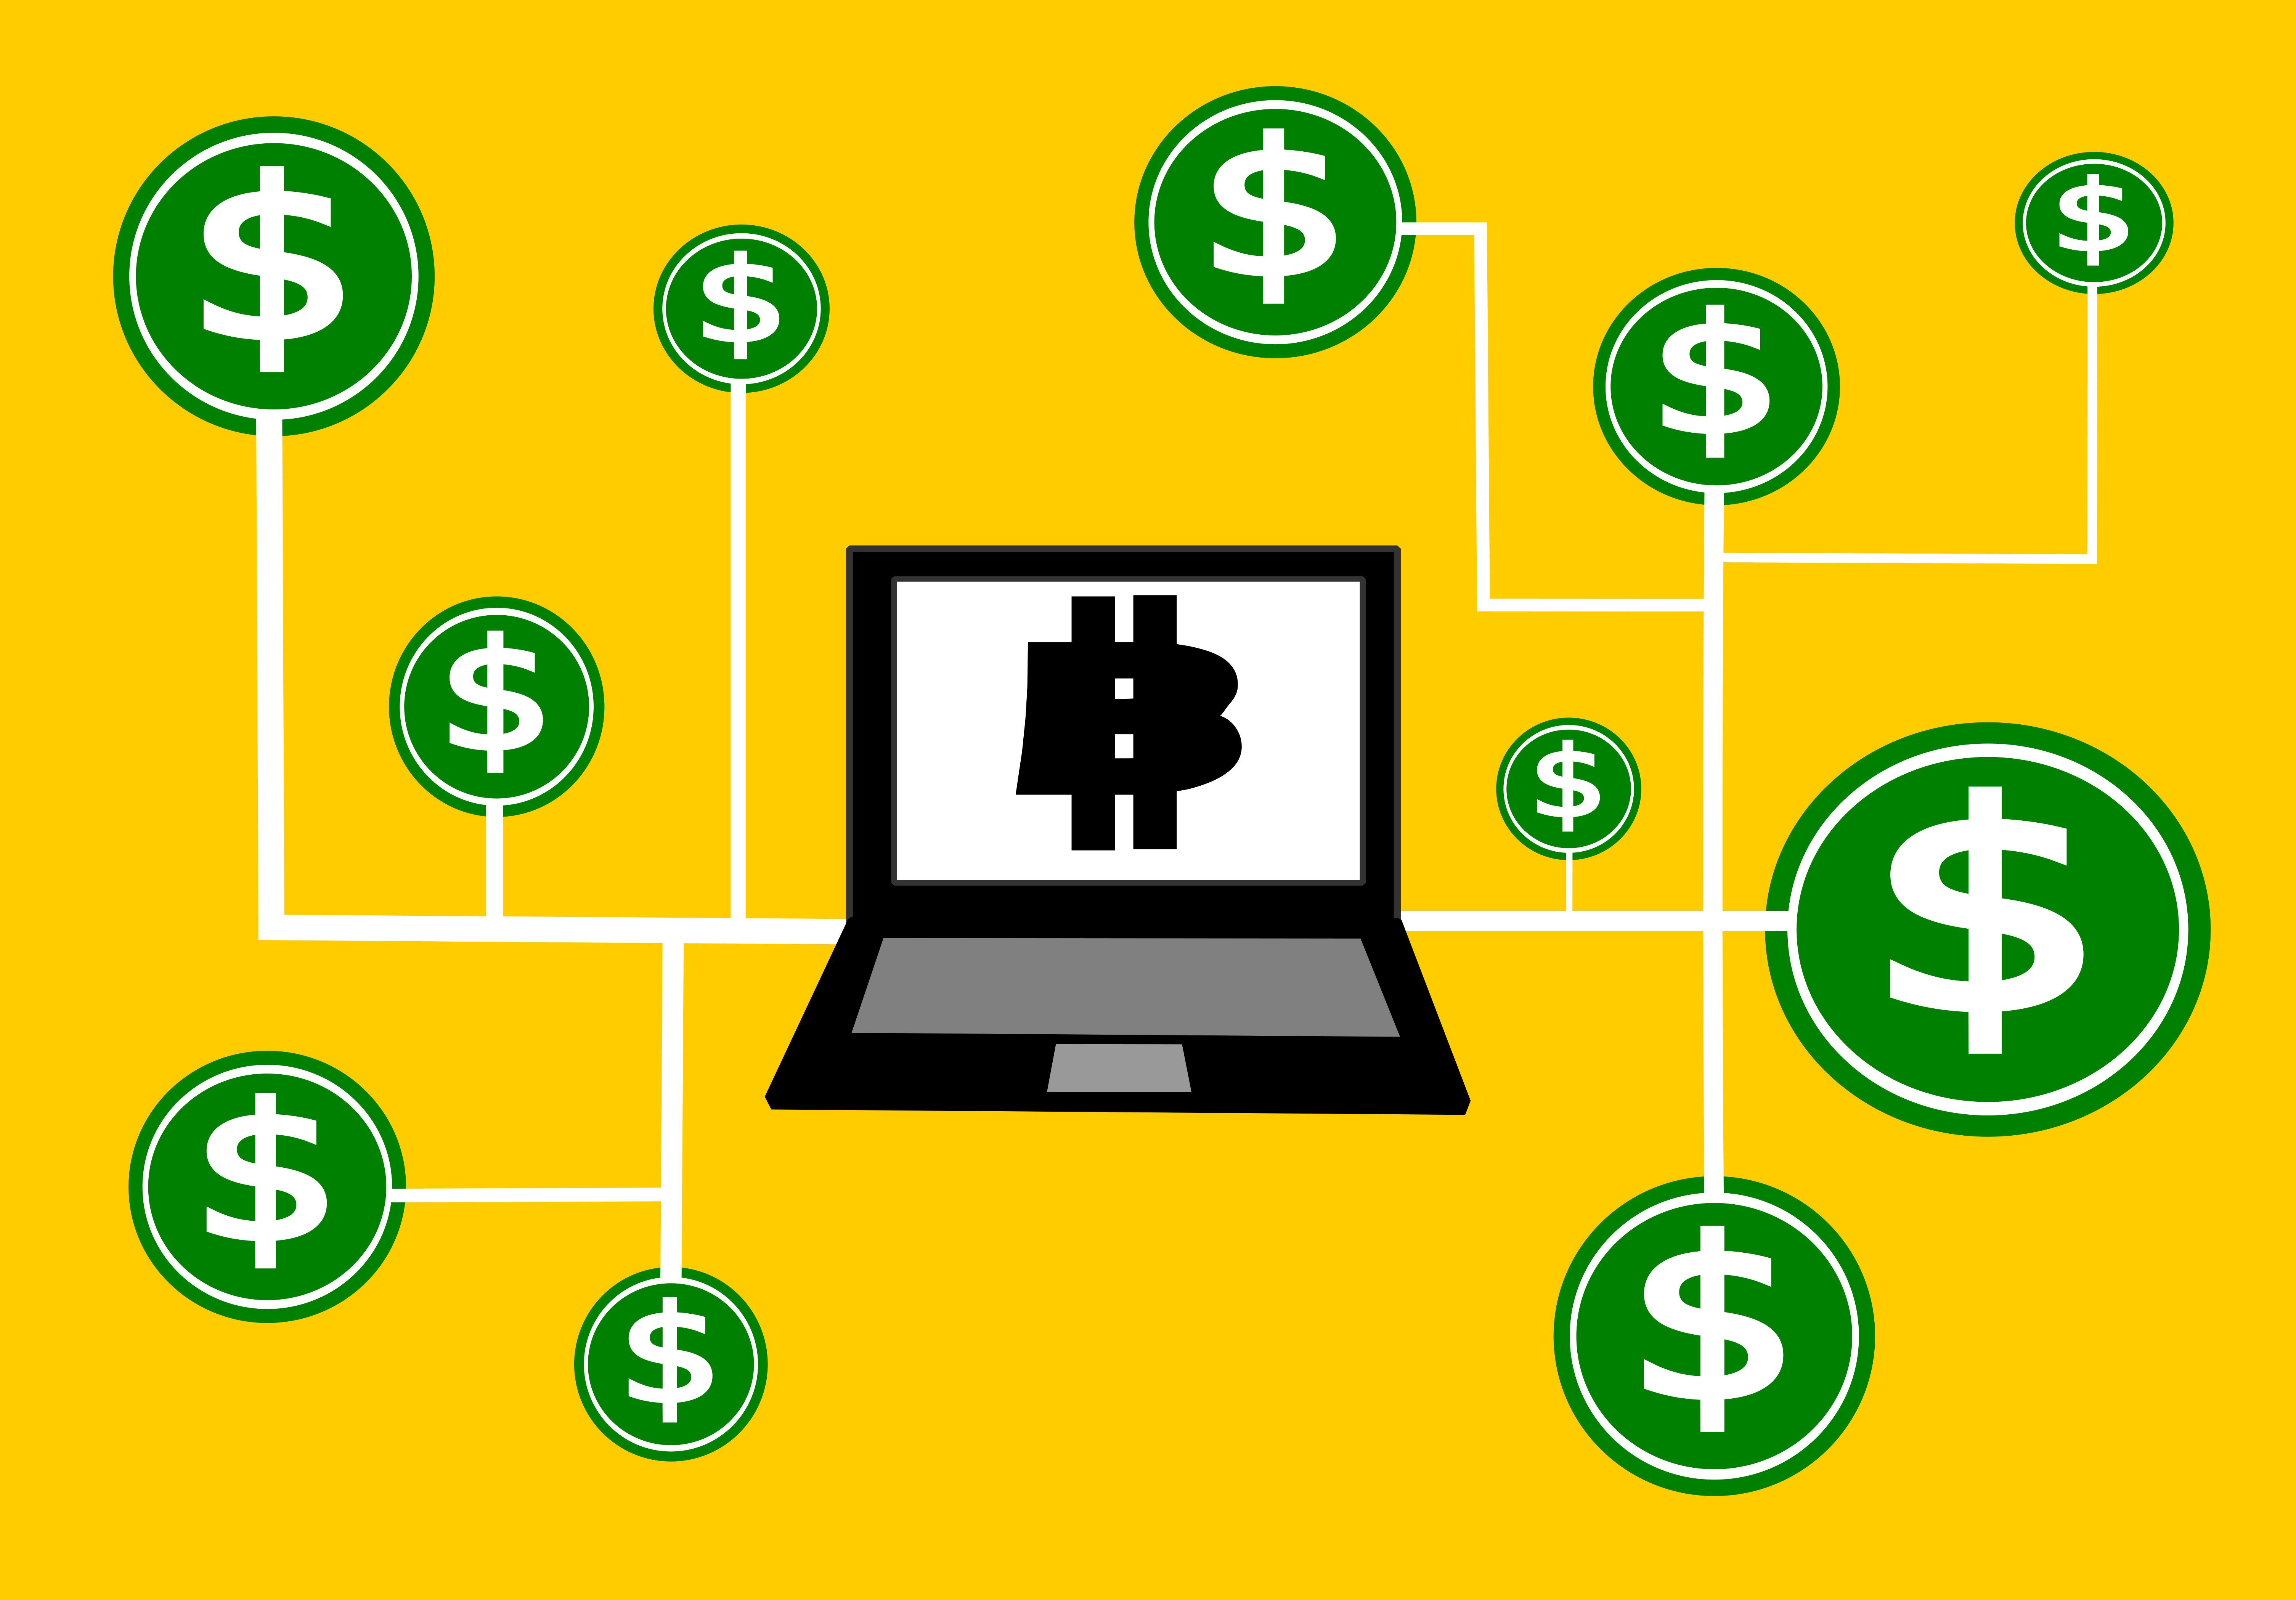 Bitcoin and Dollar signs all over